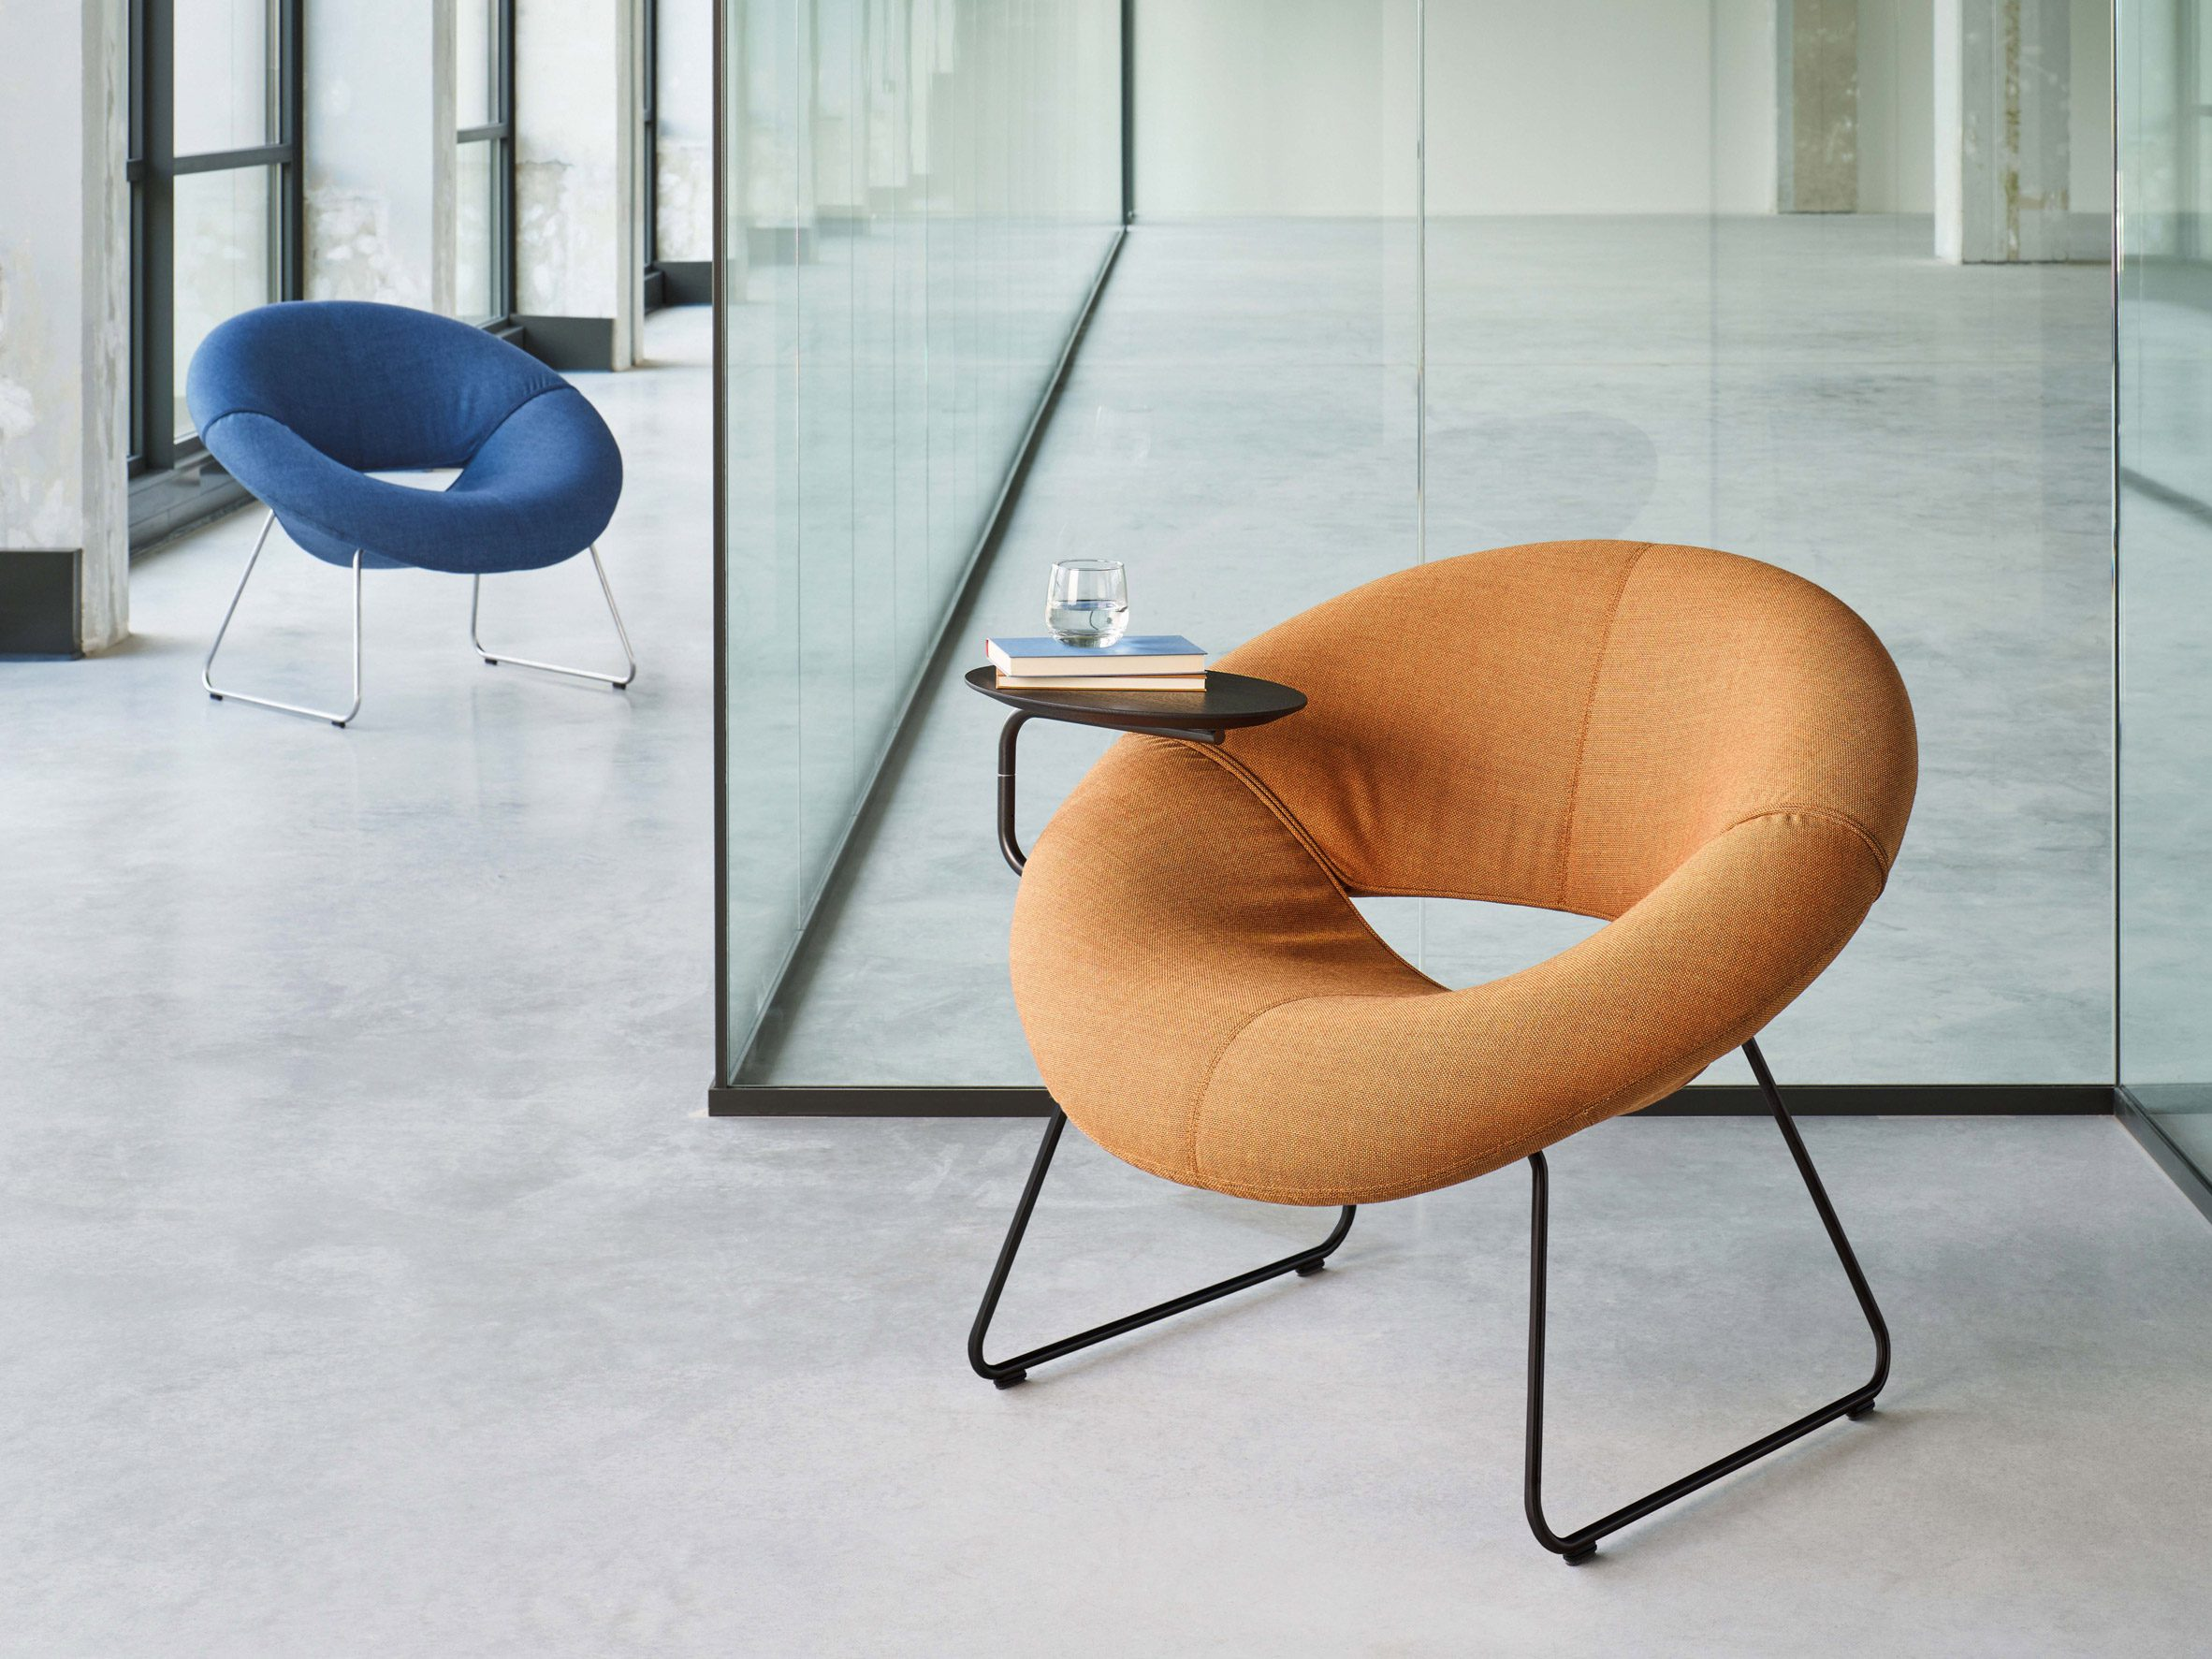 Orange LXR18 armchair with oak side table attached to its side holding books and water